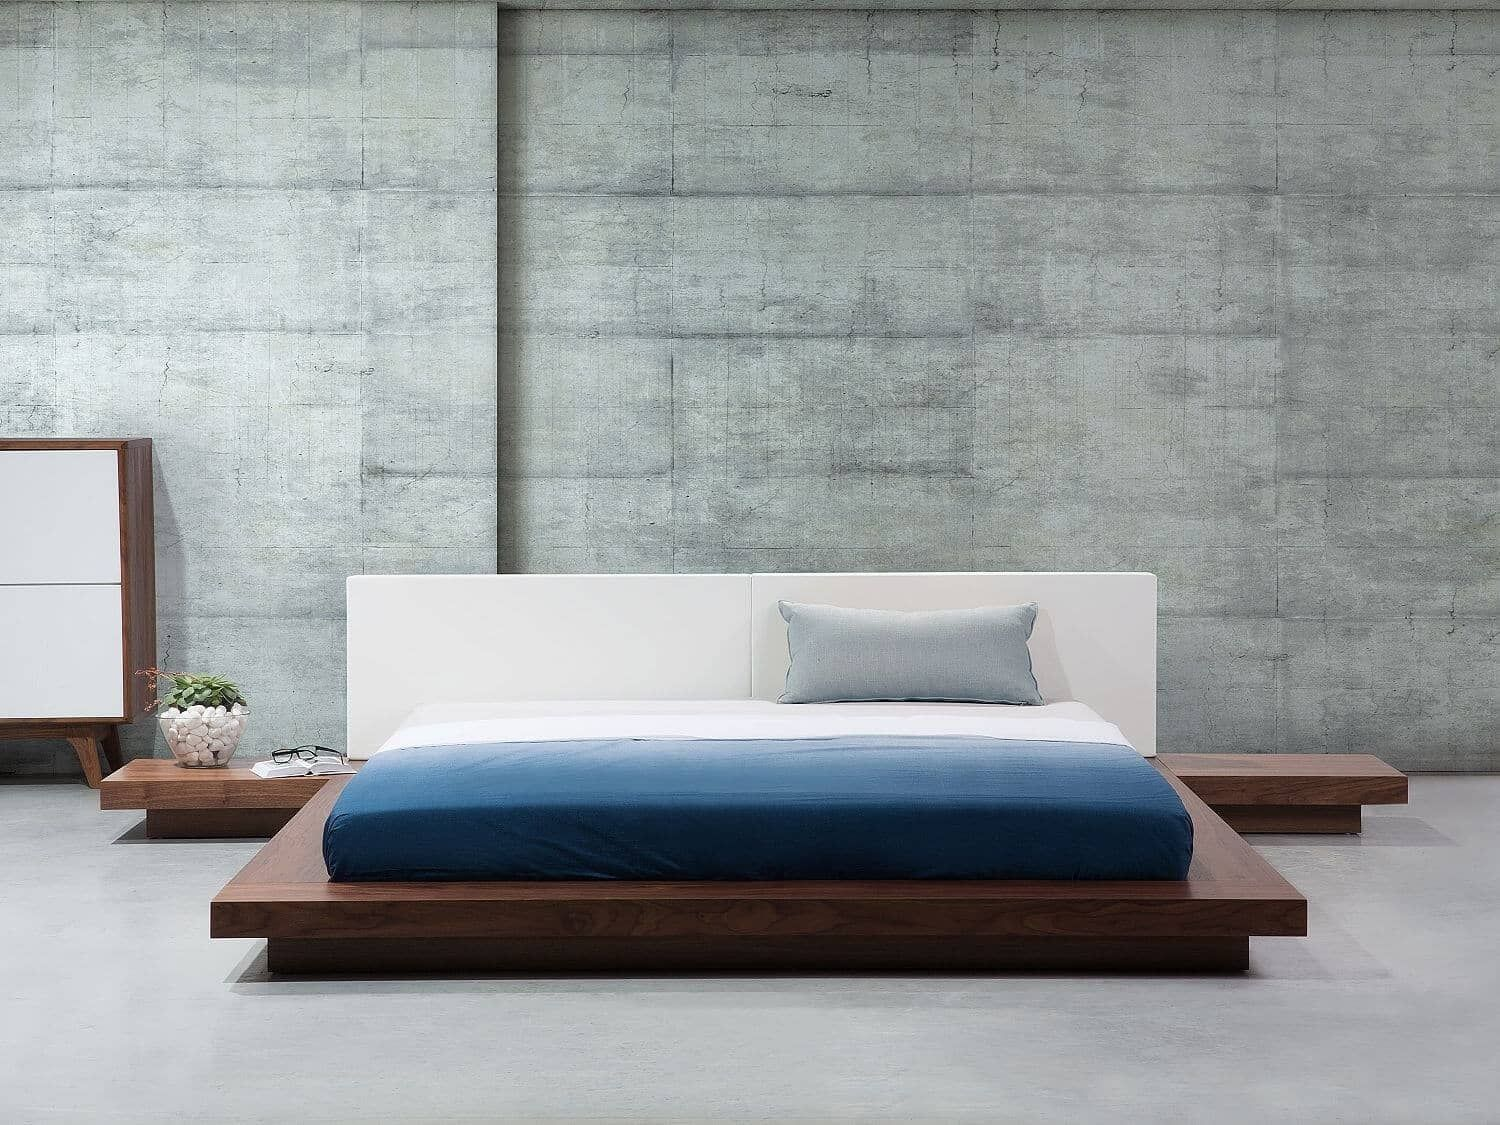 50 Cool Beds That Are Straight From Your Home Decor Dreams Bed